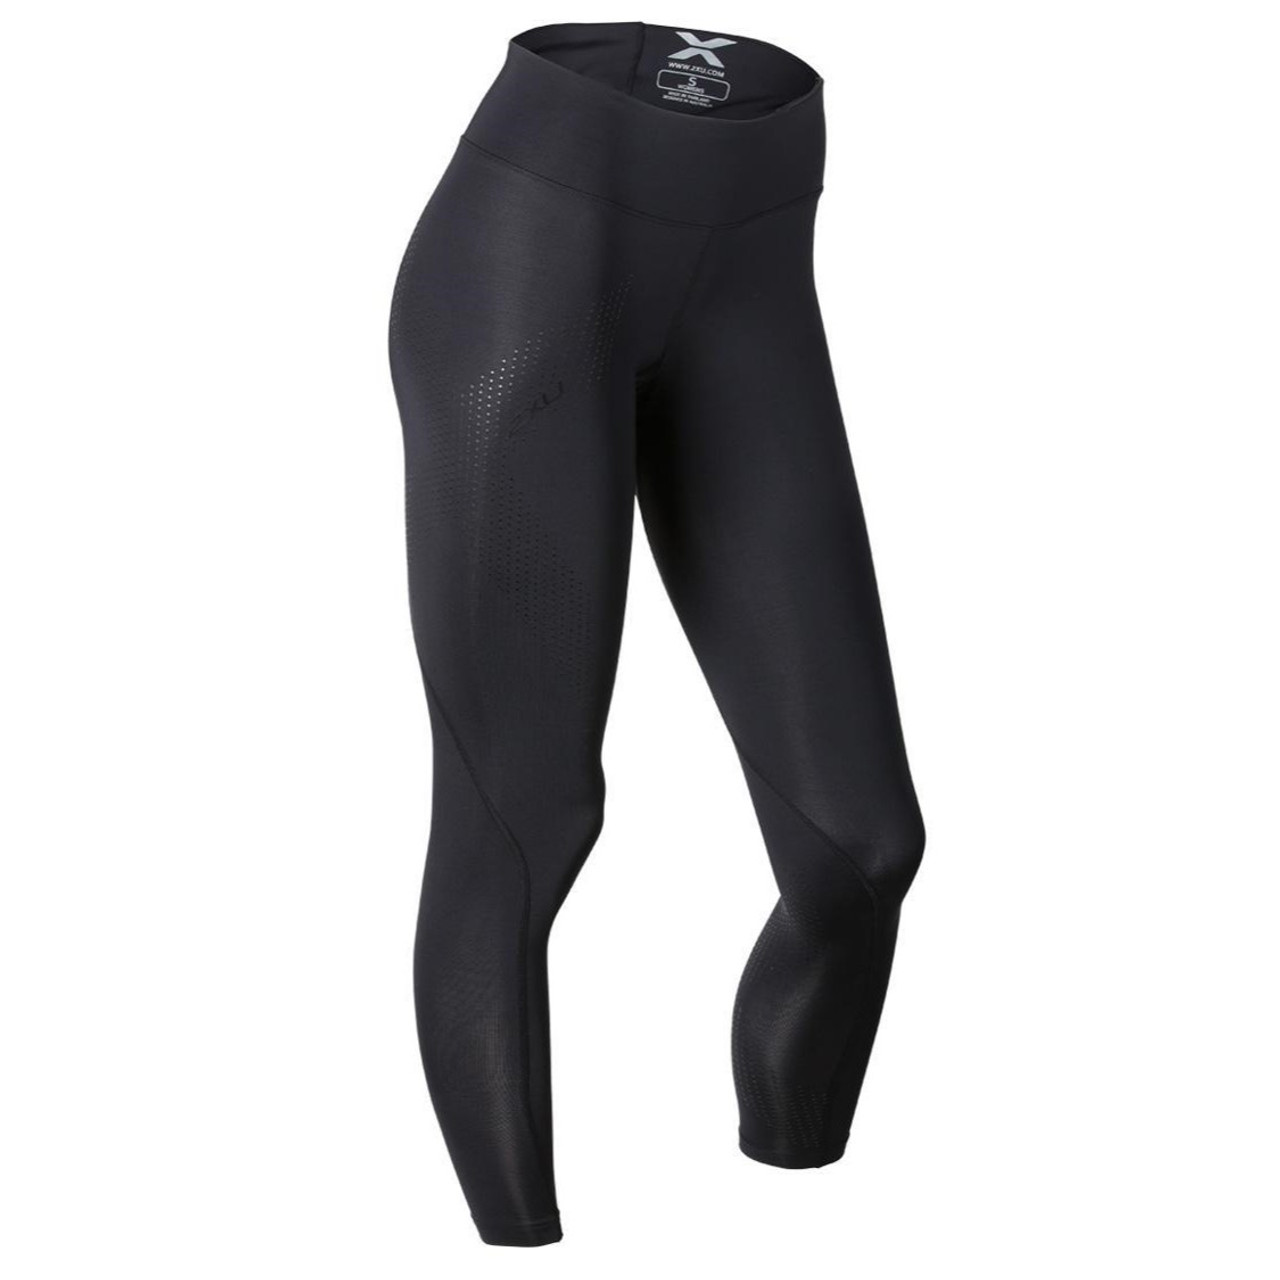 1a4d02fd88 2XU Women's Wide Waist Band Compression Tight - 2019 - Triathlete Sports